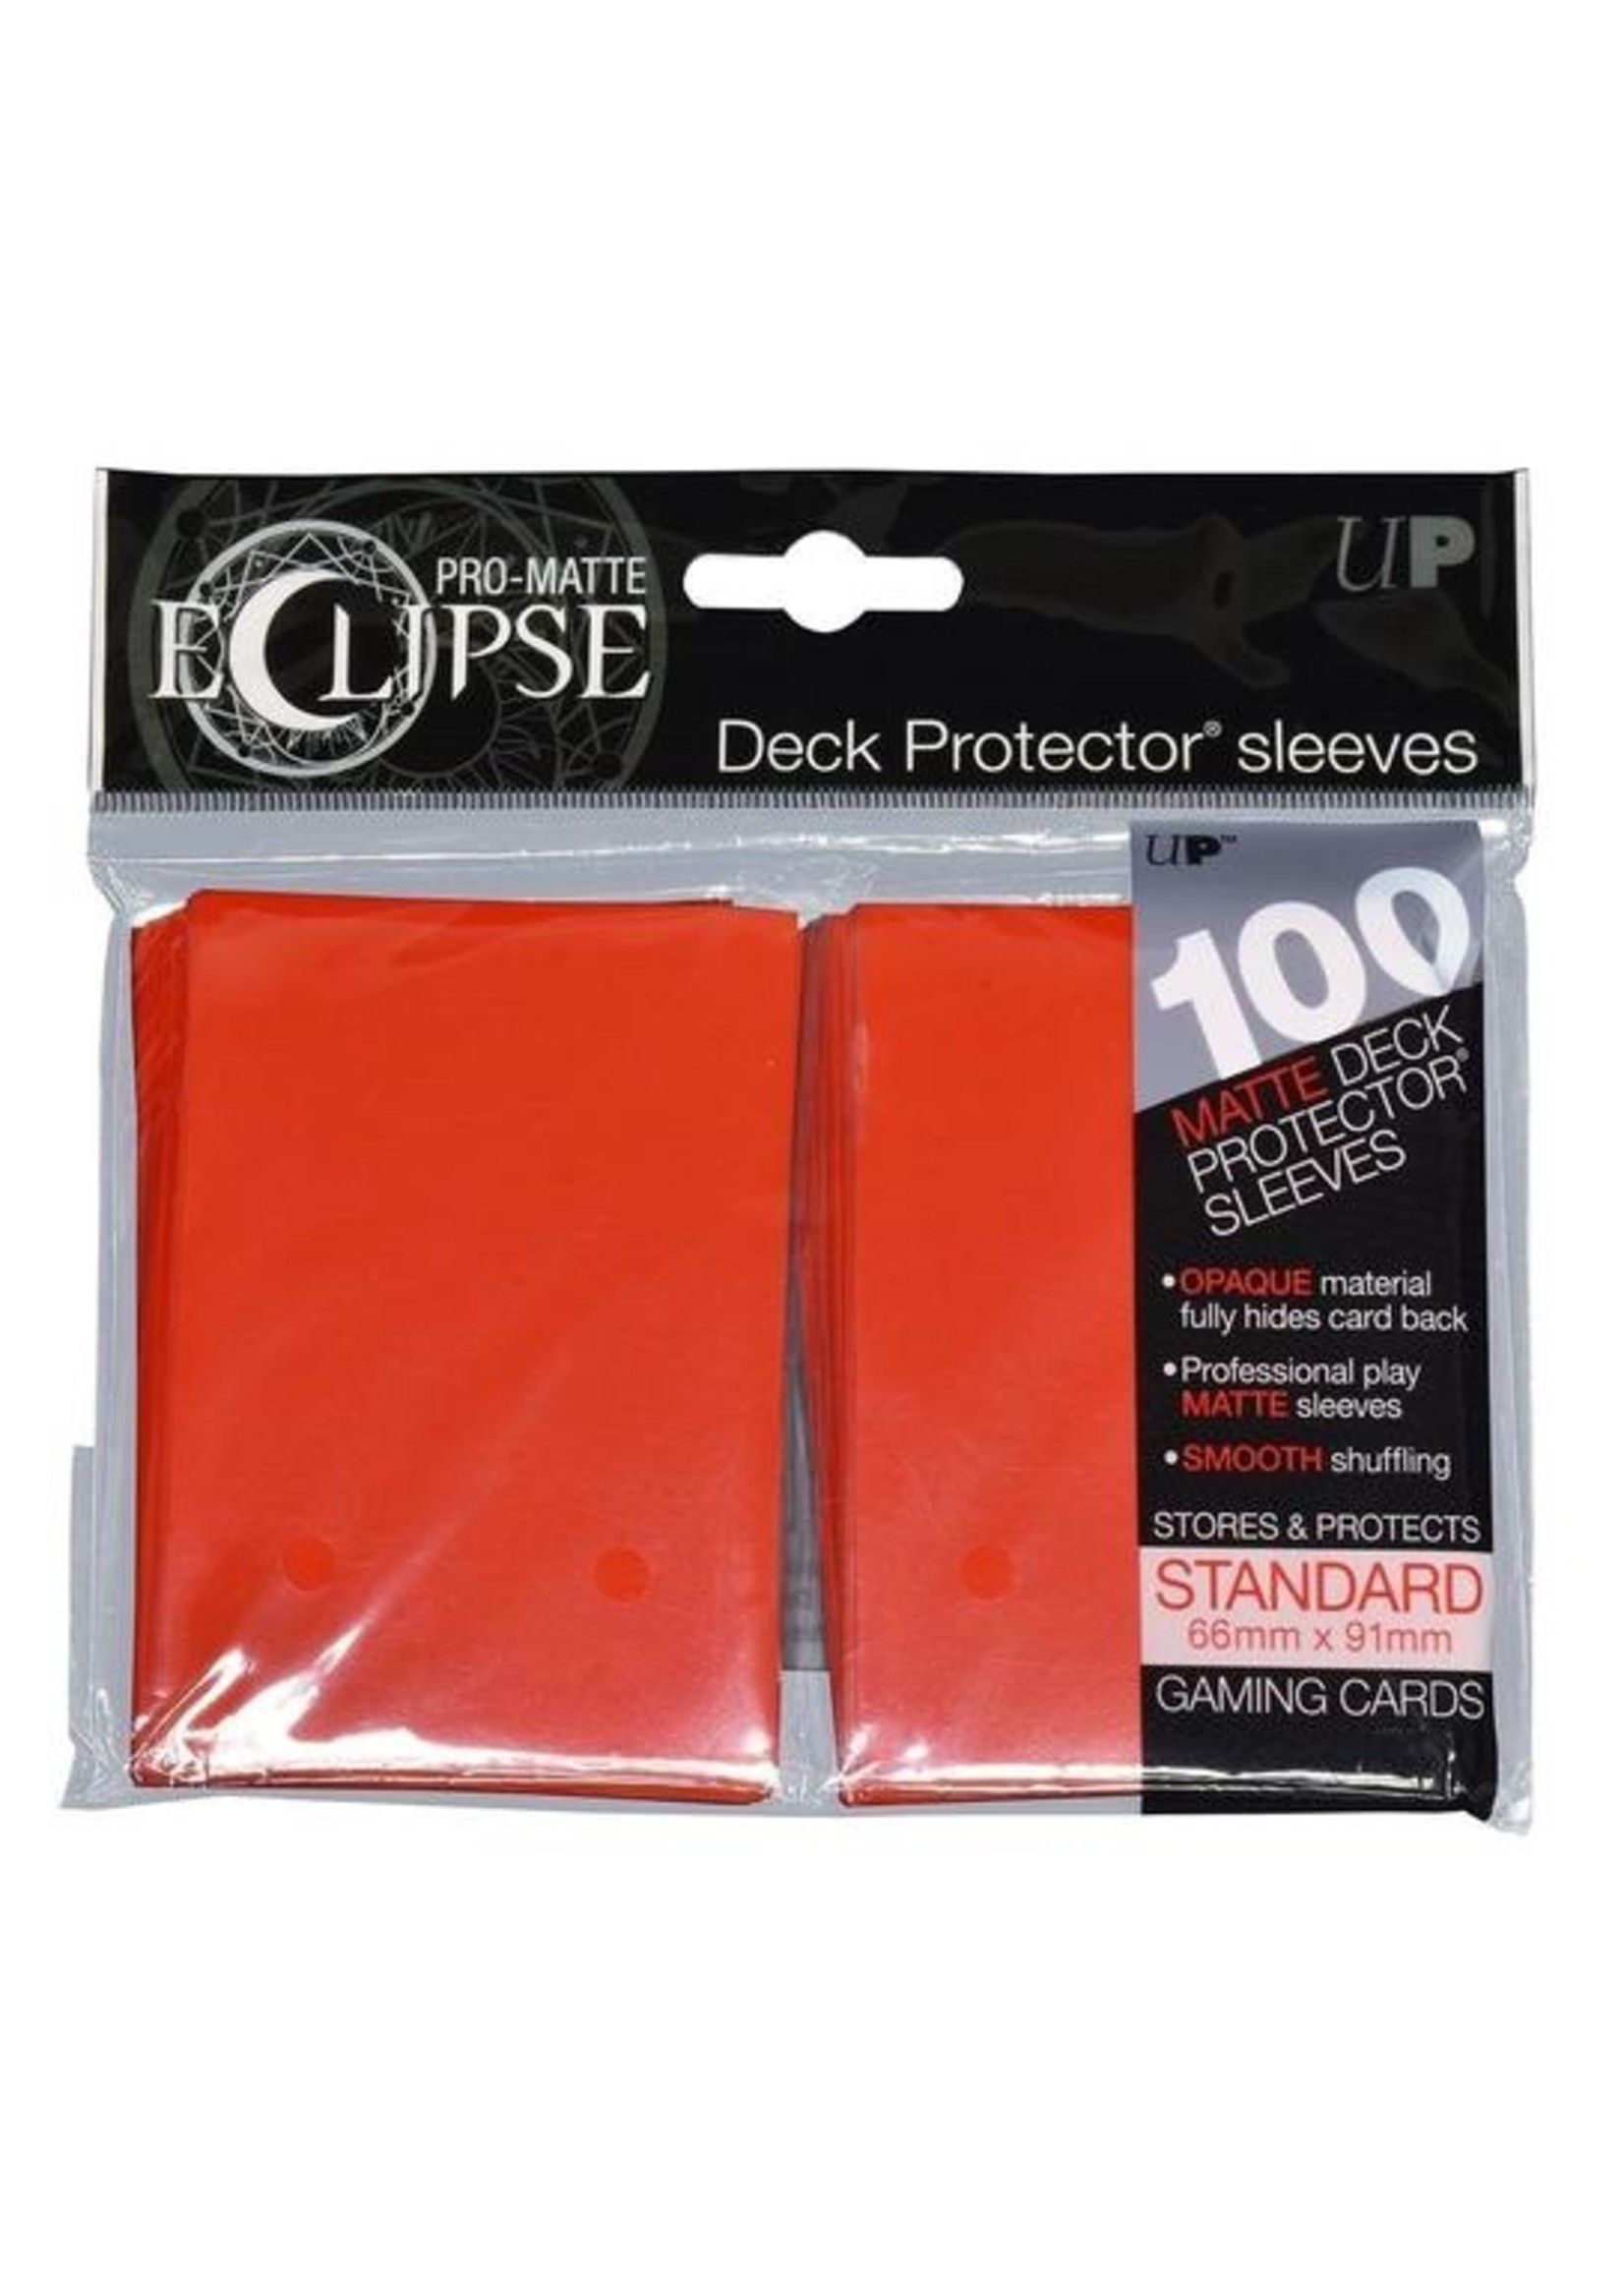 Pro-Matte Eclipse 2.0 Standard Deck Protector Sleeves: Apple Red (100)